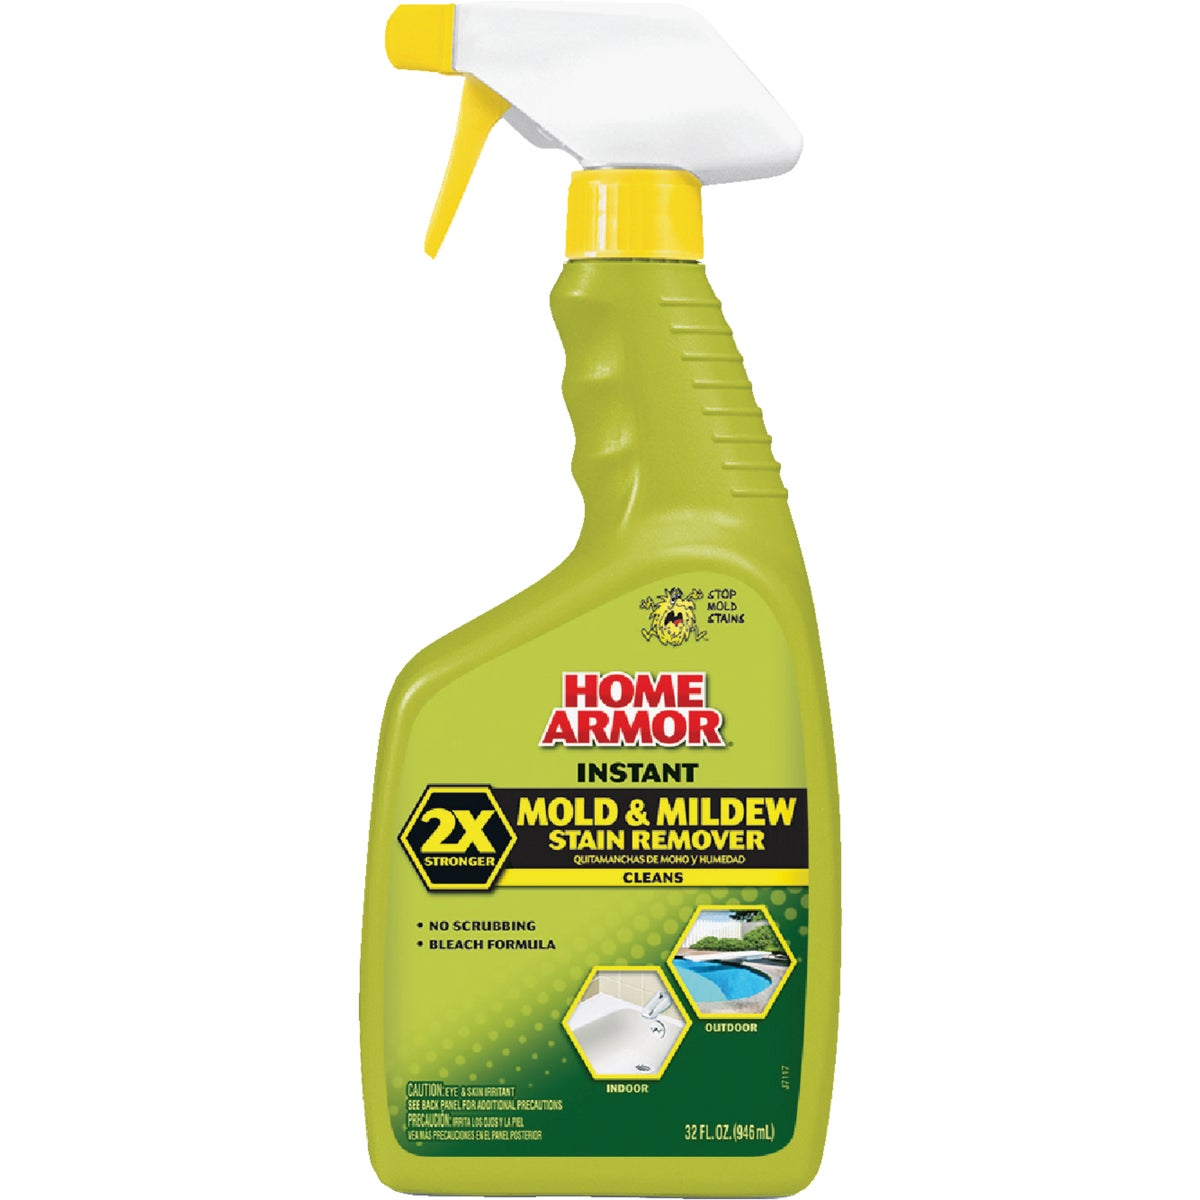 32OZ MLDEW STAIN REMOVER